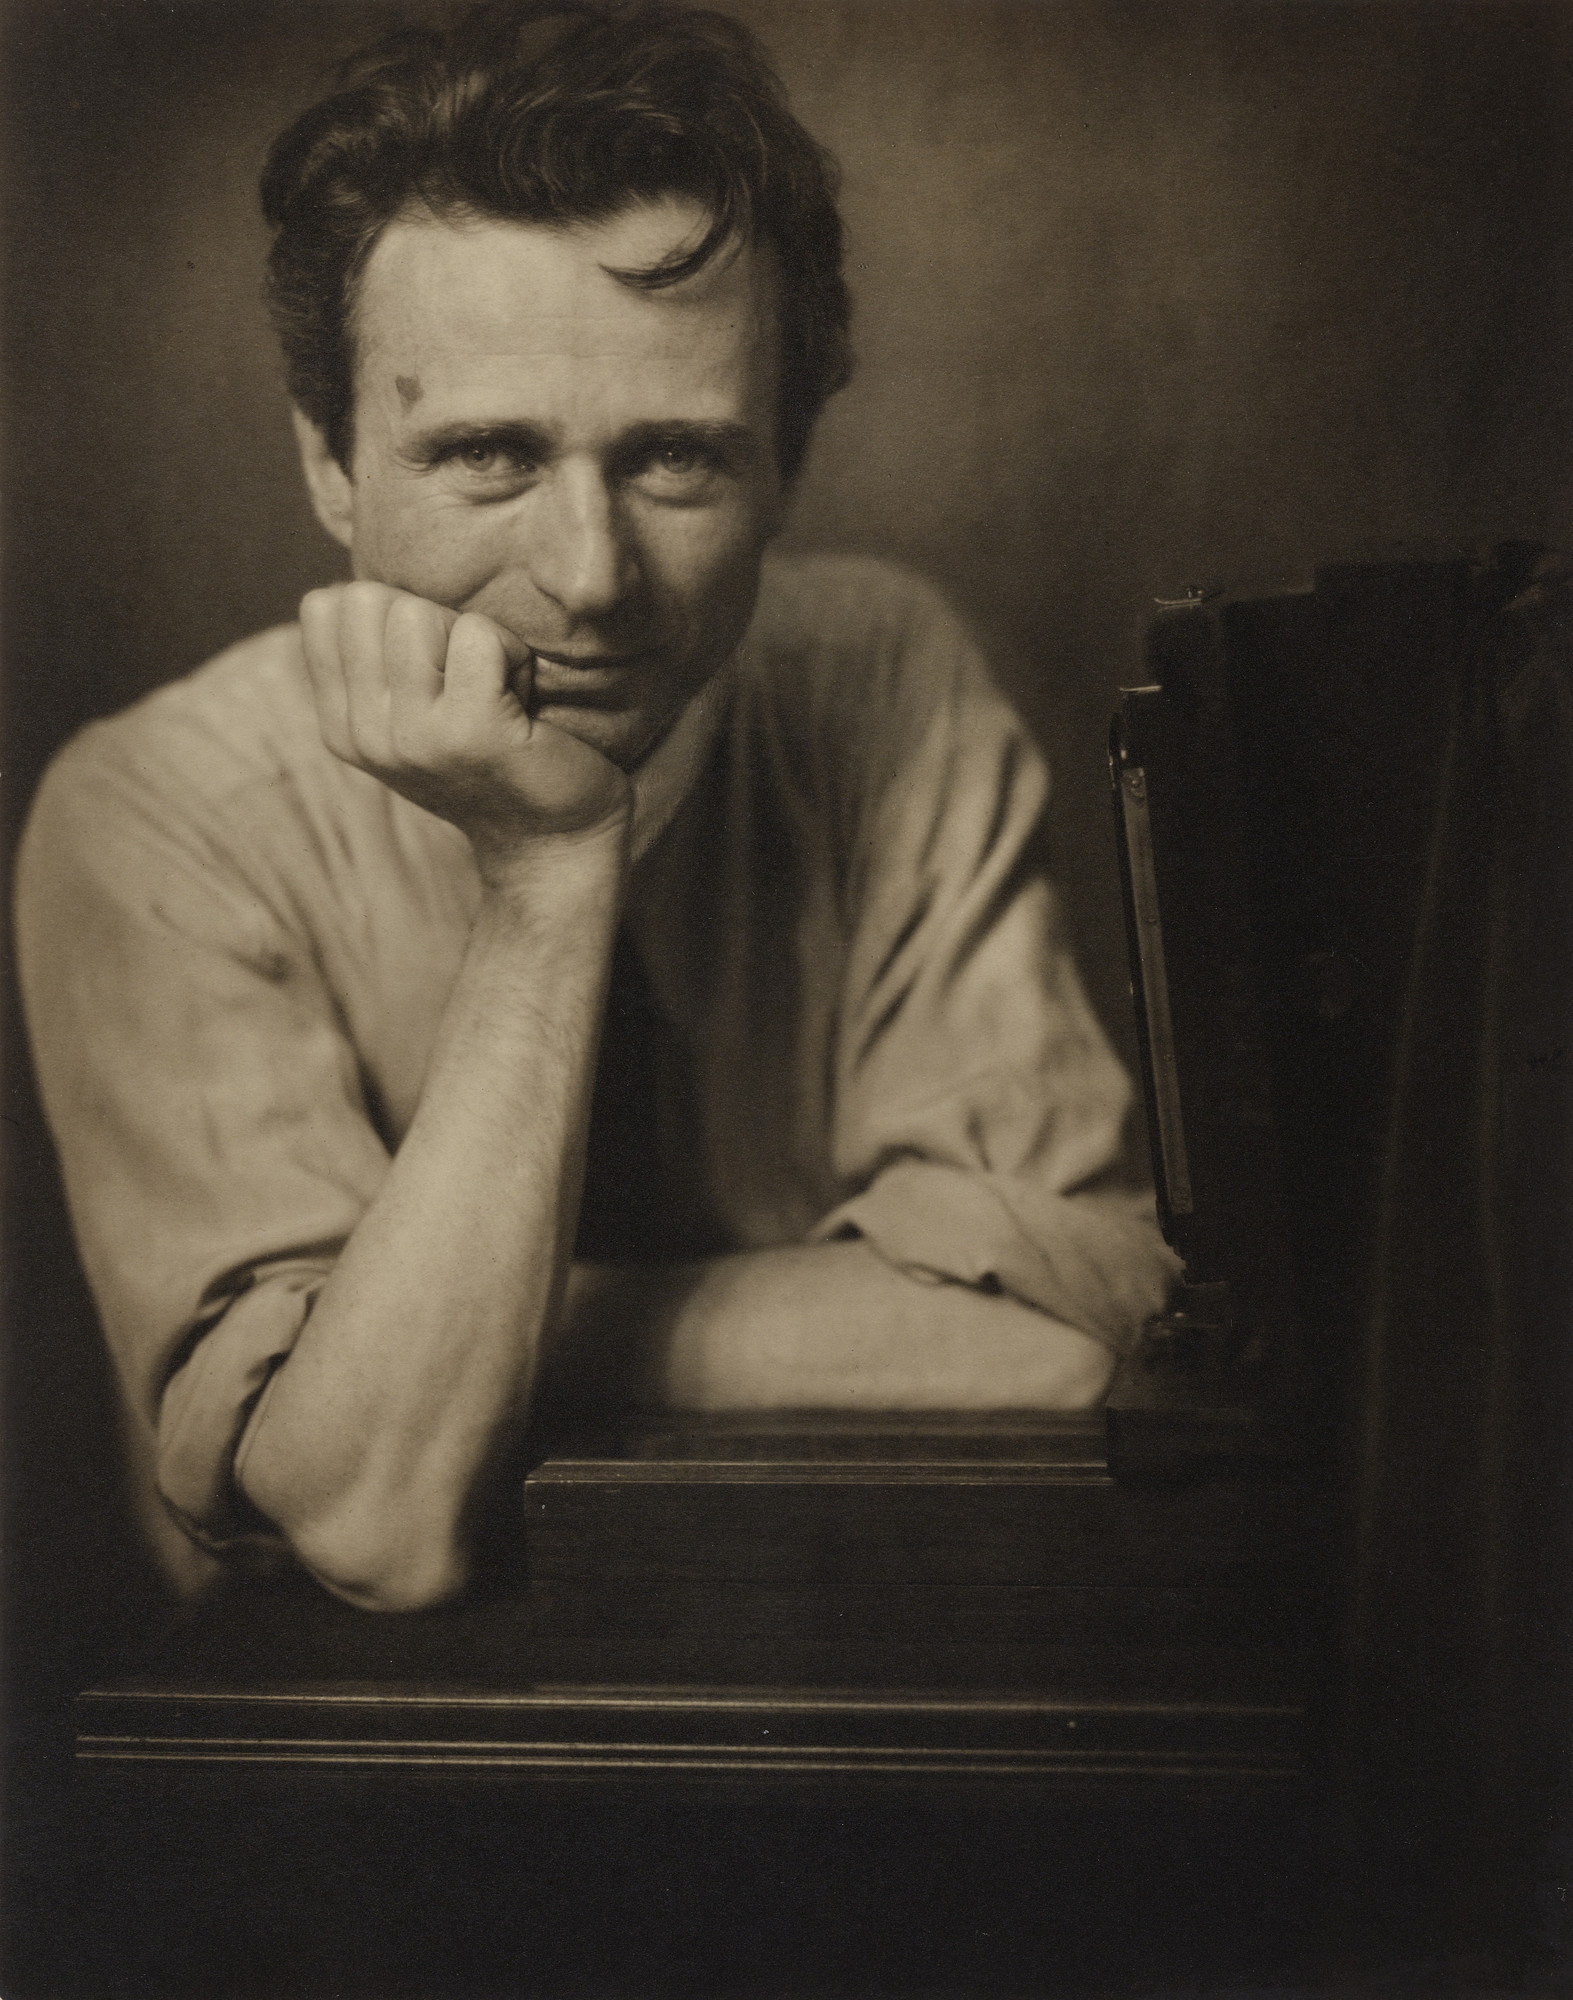 Edward Steichen. Self-Portrait with Studio Camera. c. 1917